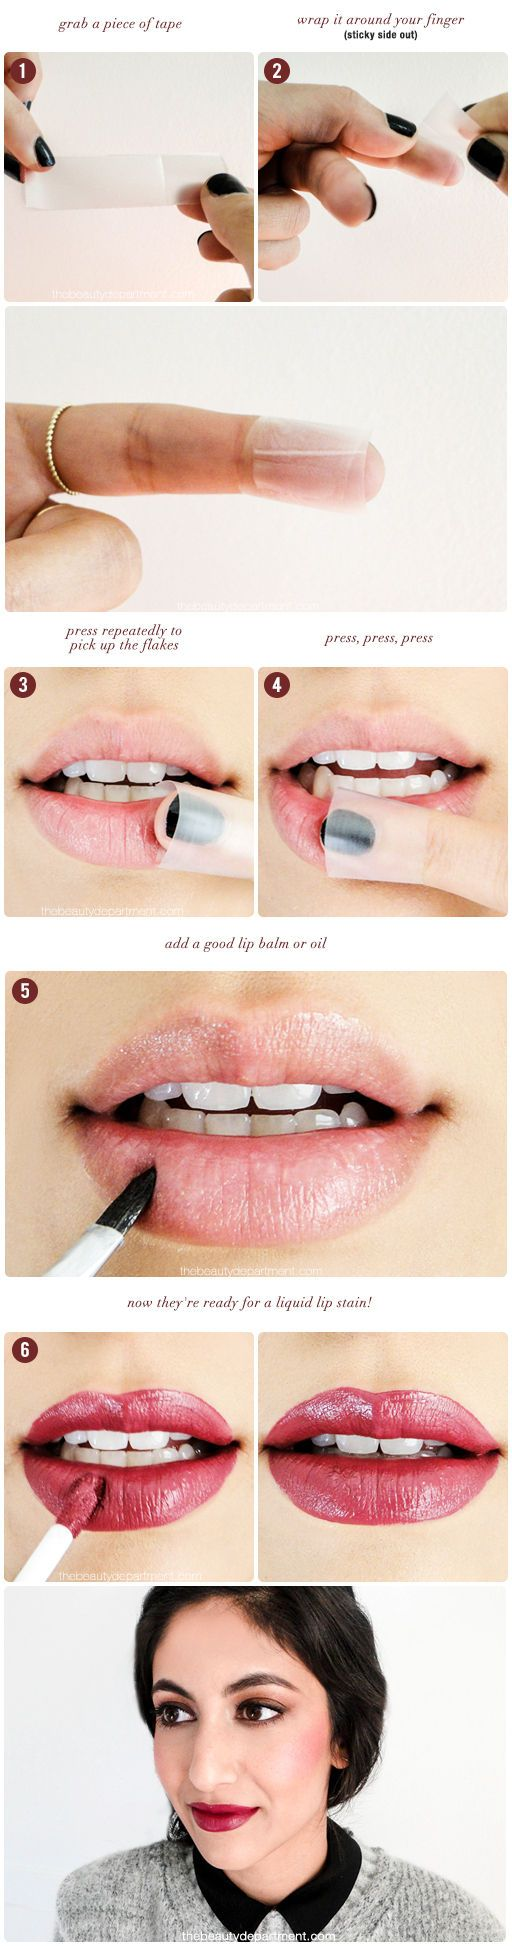 Winter is the season of chapped lips, but you don't have to fall prey! Repin and click to save this handy hack for un-chapping that pucker - perfect for when you want to wear liquid lipstick without your lips looking gross and flaky!